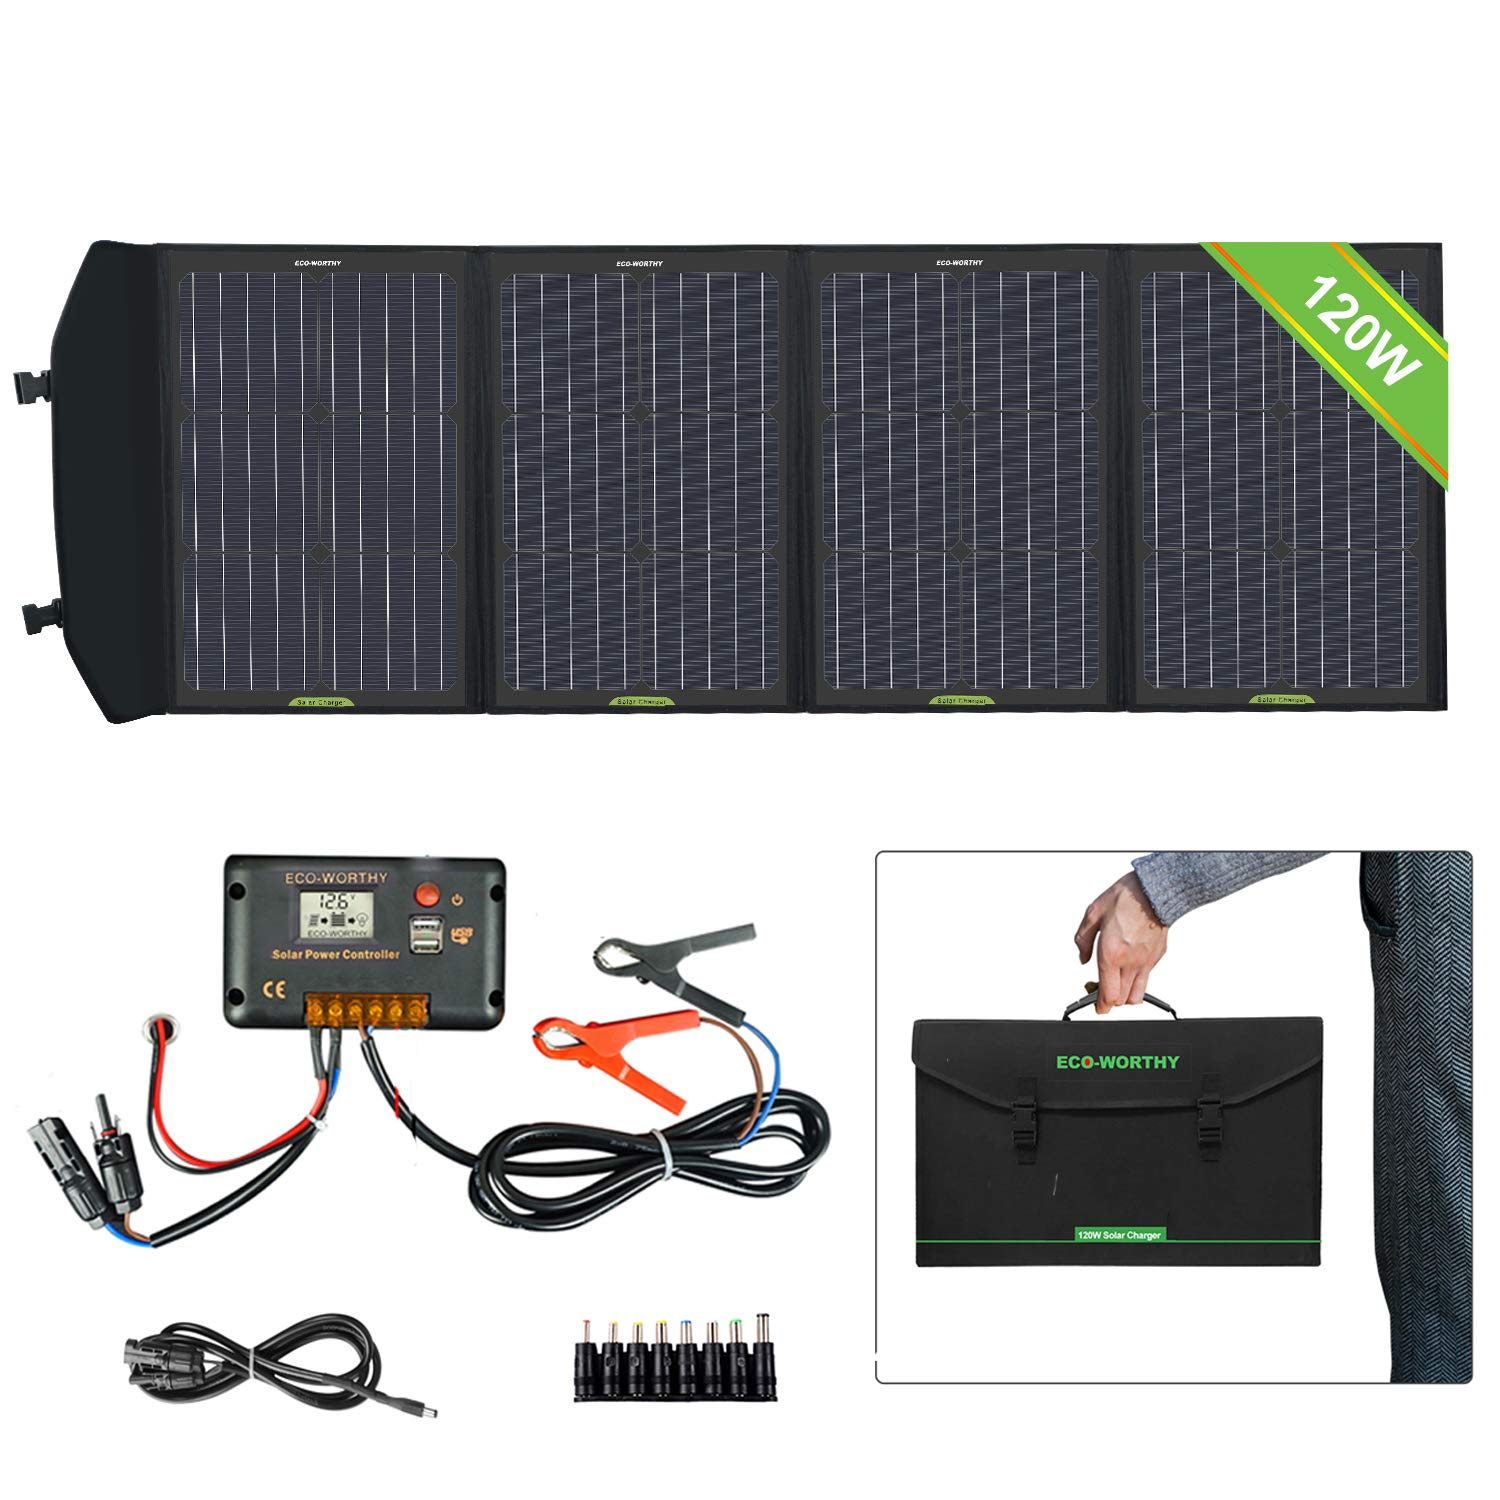 ECO-WORTHY 120W Foldable Solar Panel kit with 20A LCD Charger Controller with USB Port for Portable Generator/Power Station/Battery Bank/USB Devices Mobile Phone Laptop by ECO-WORTHY